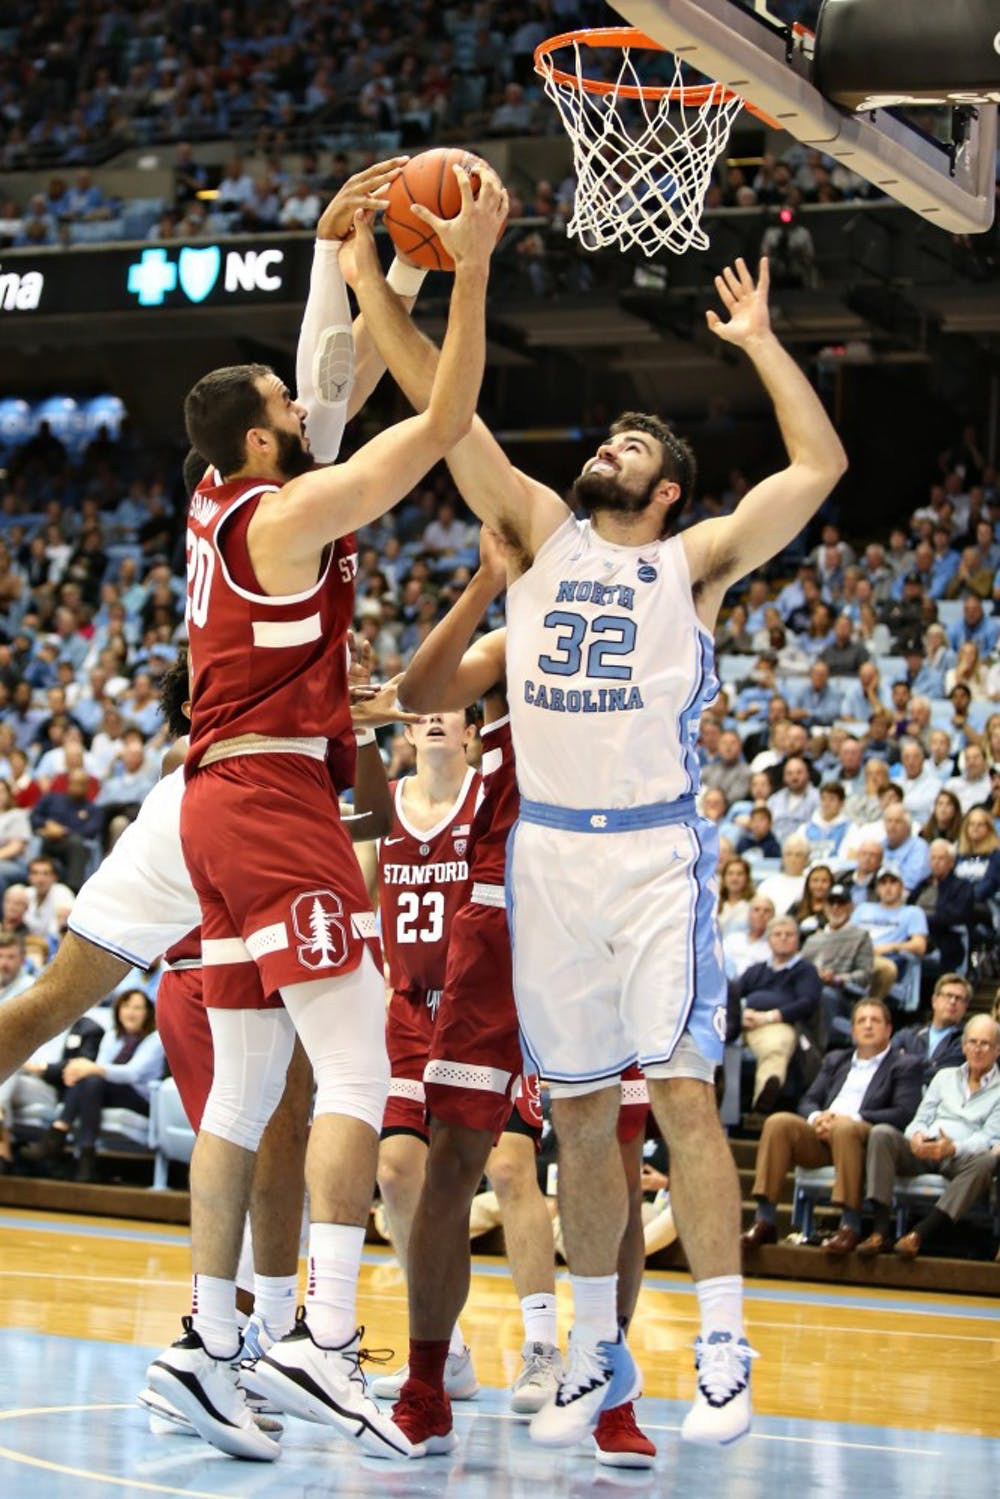 UNC forward Luke Maye (32) guards Stanford center Josh Sharma (20) as he pulls up for a shot in the Dean Smith Center on Monday, Nov. 12, 2018. UNC won 90-72.